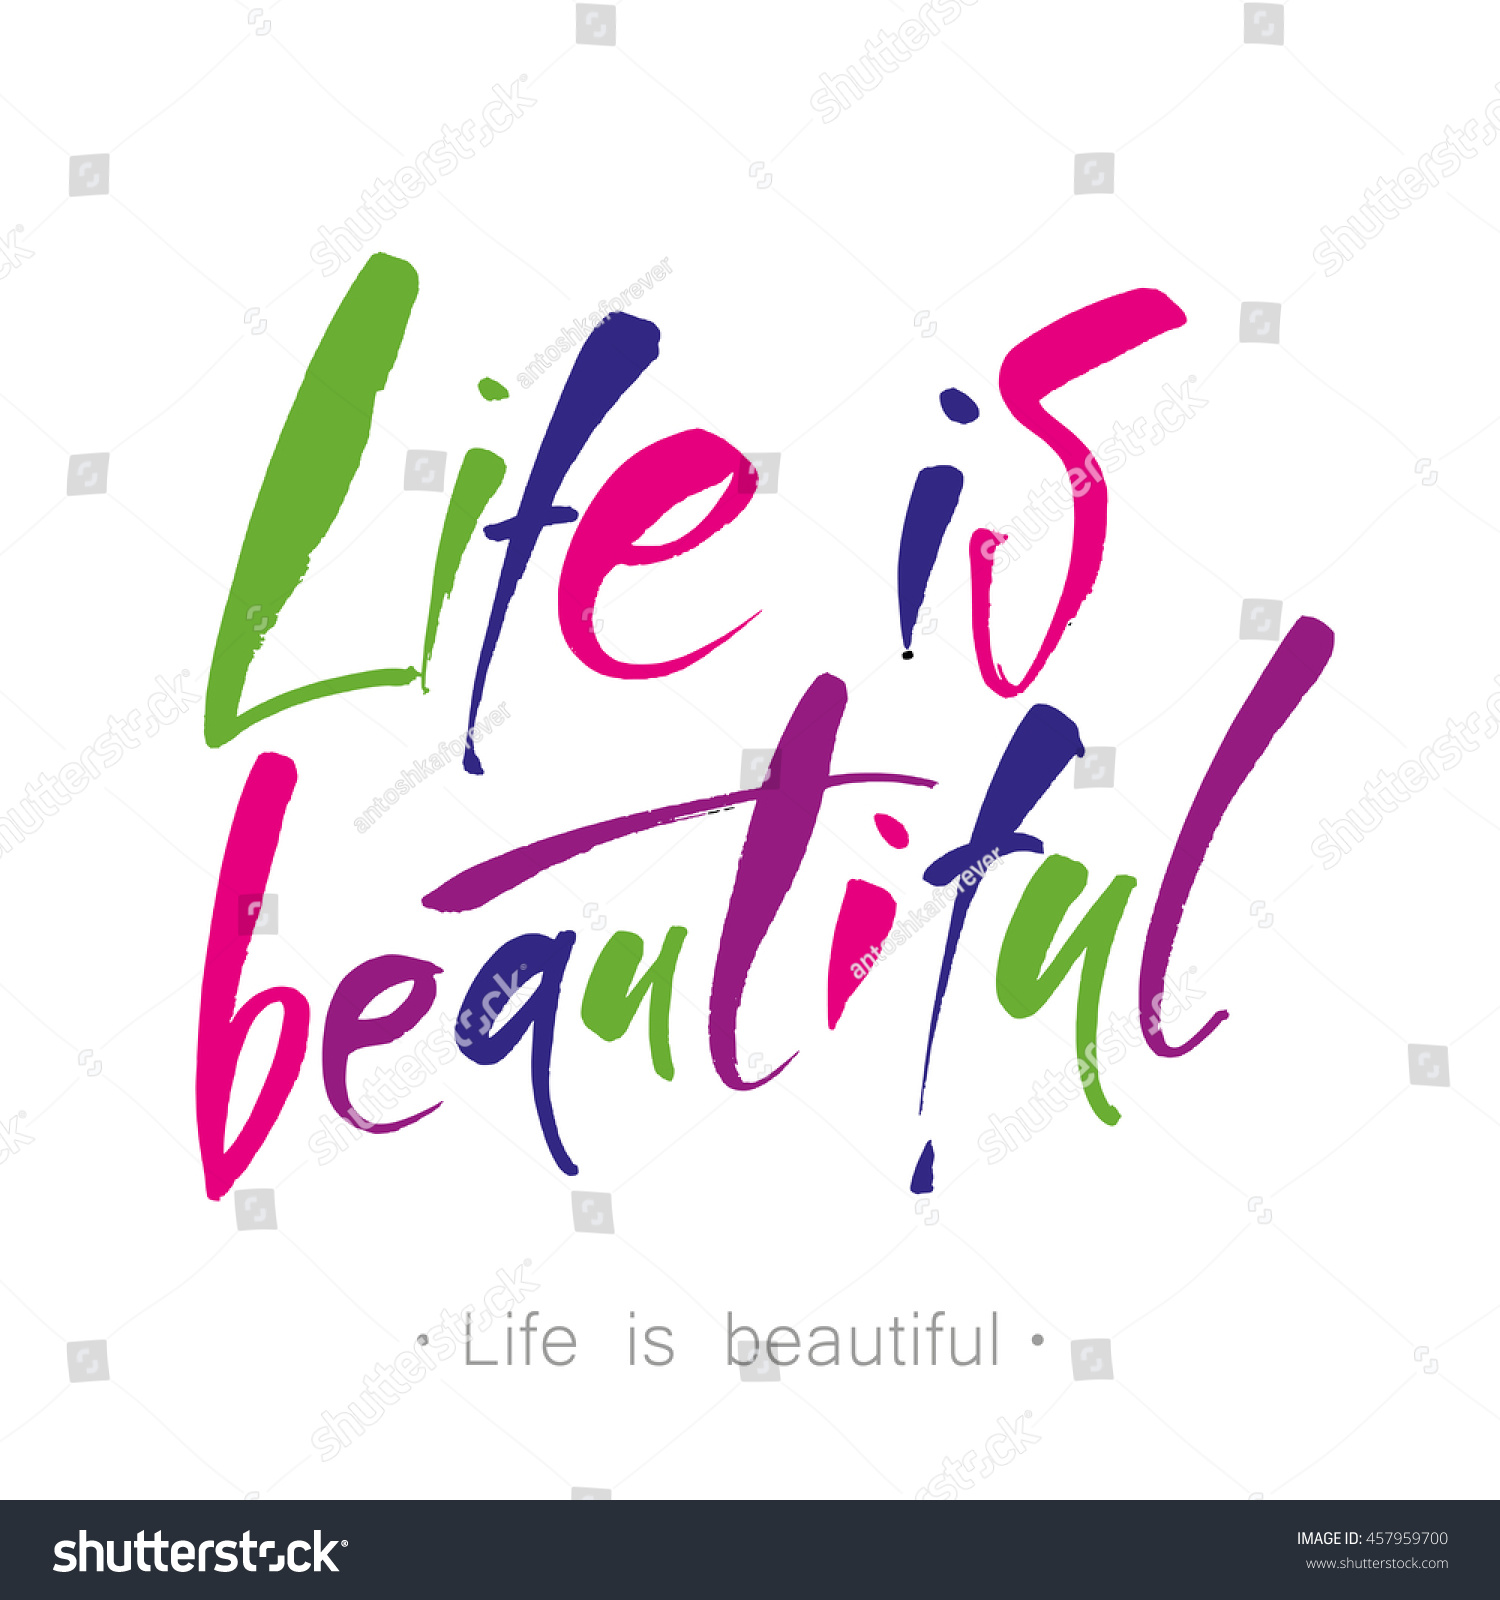 Life Beautiful Calligraphy Phrase Greetings Cards Stock Vector